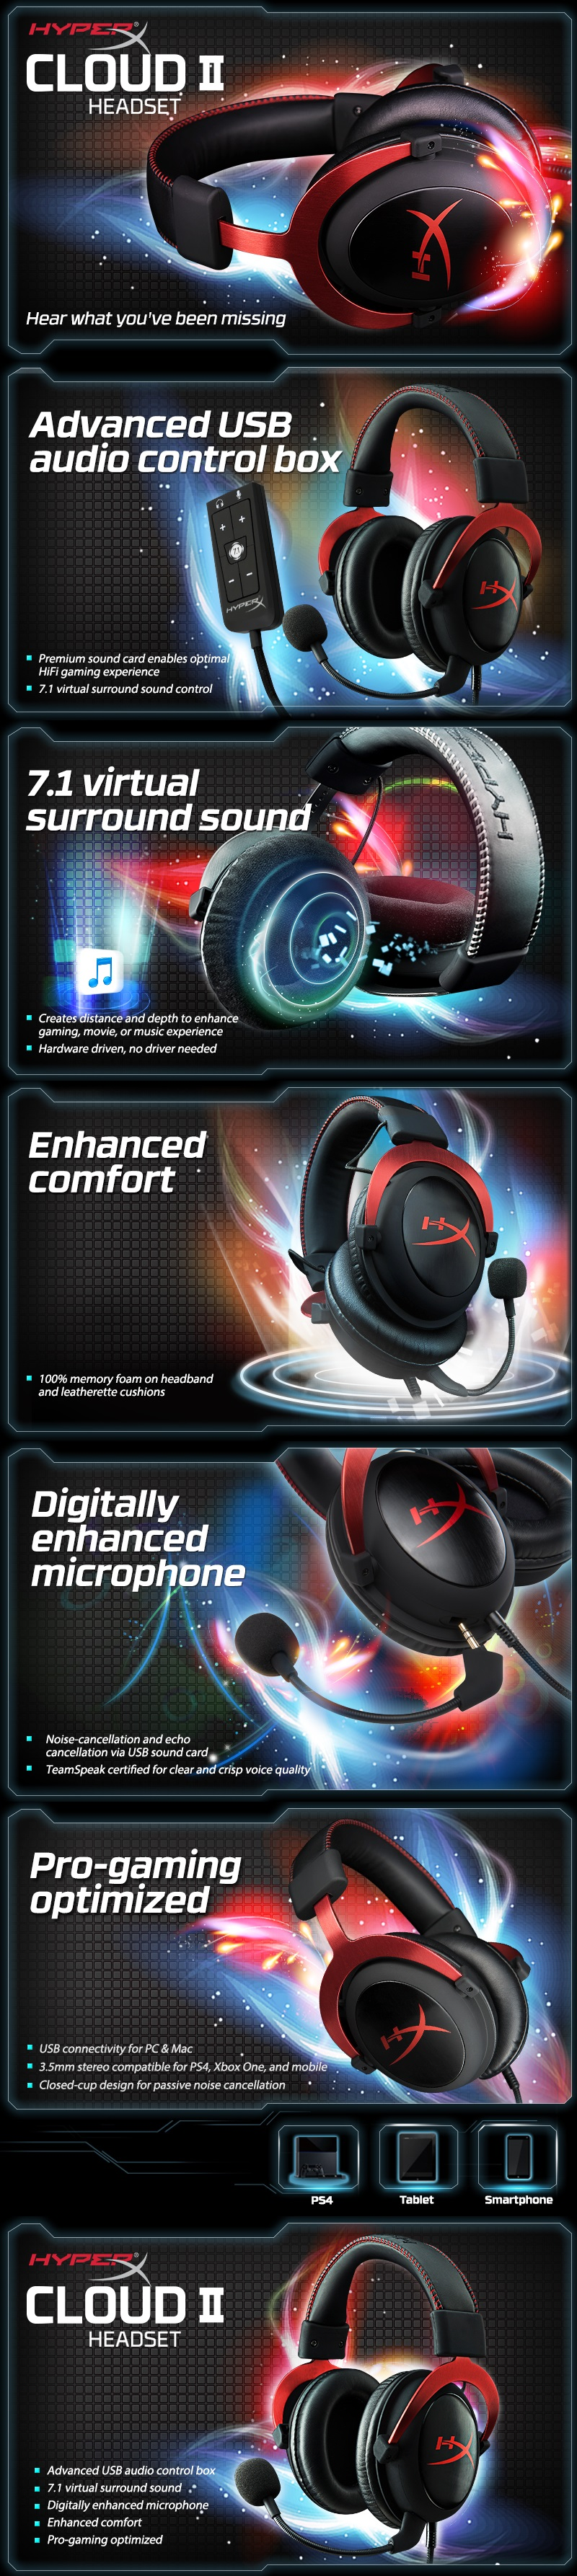 A large marketing image providing additional information about the product Kingston HyperX Cloud II Gaming Headset Red - Additional alt info not provided